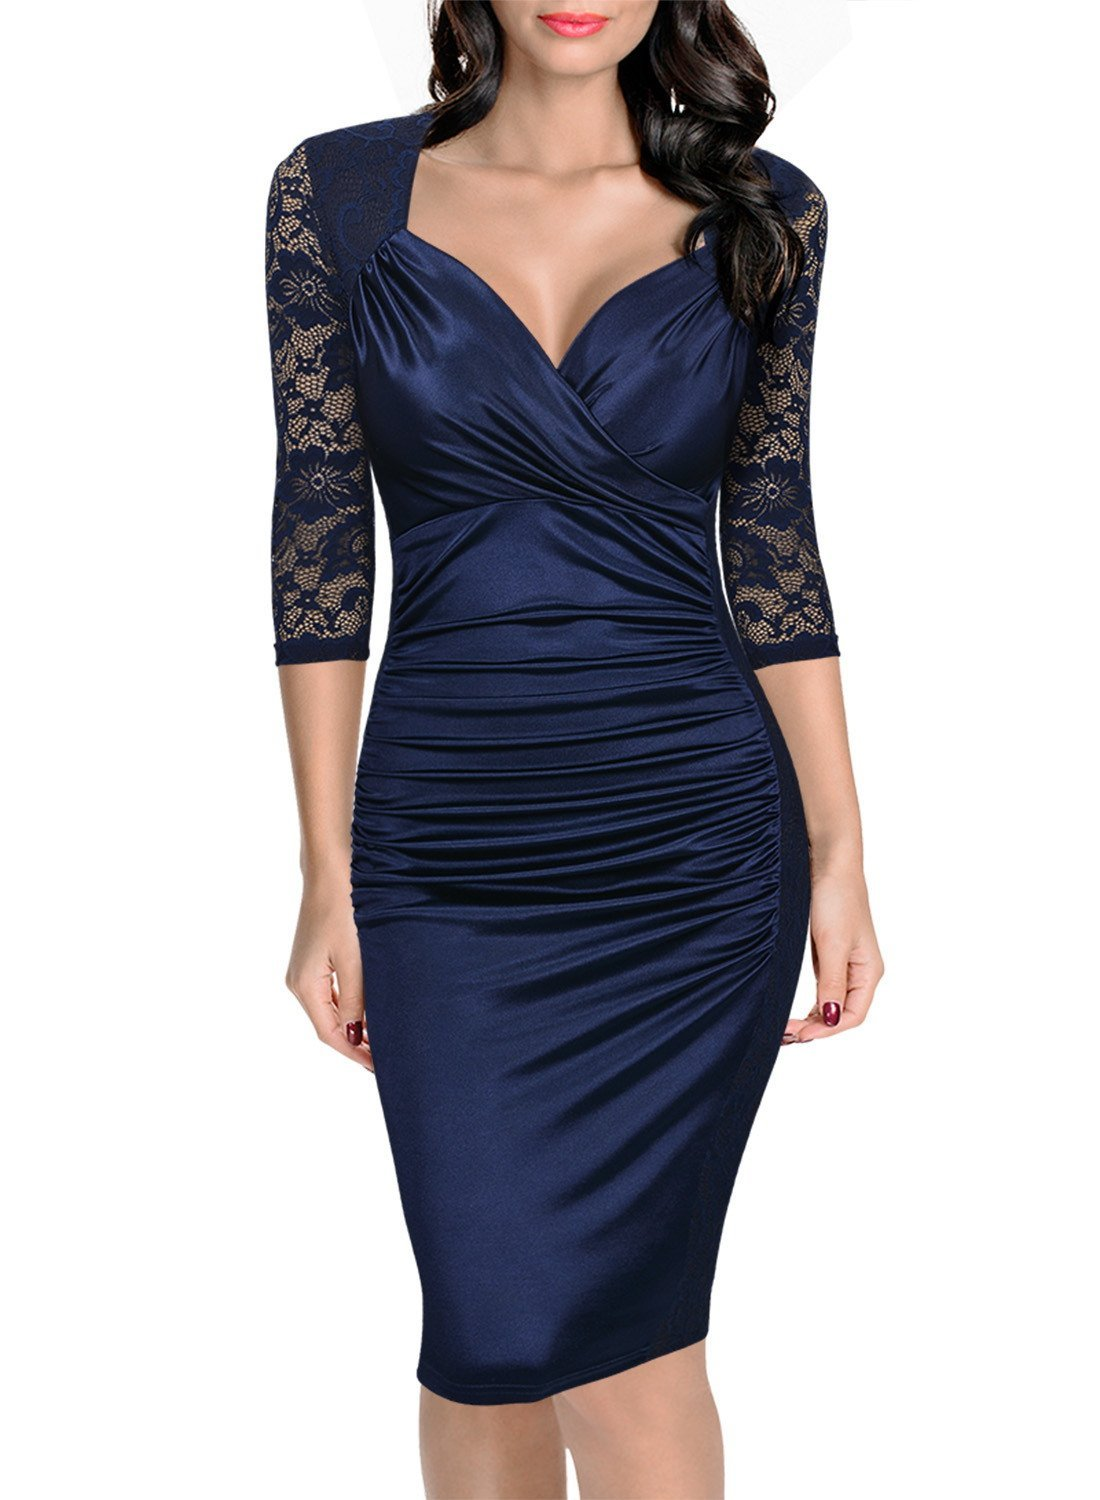 2487f49ddcfc US$ 11.3 - Elegant V-Neck Ruched Midi Dress with Lace Sleeves 22951-5 -  www.global-lover.com